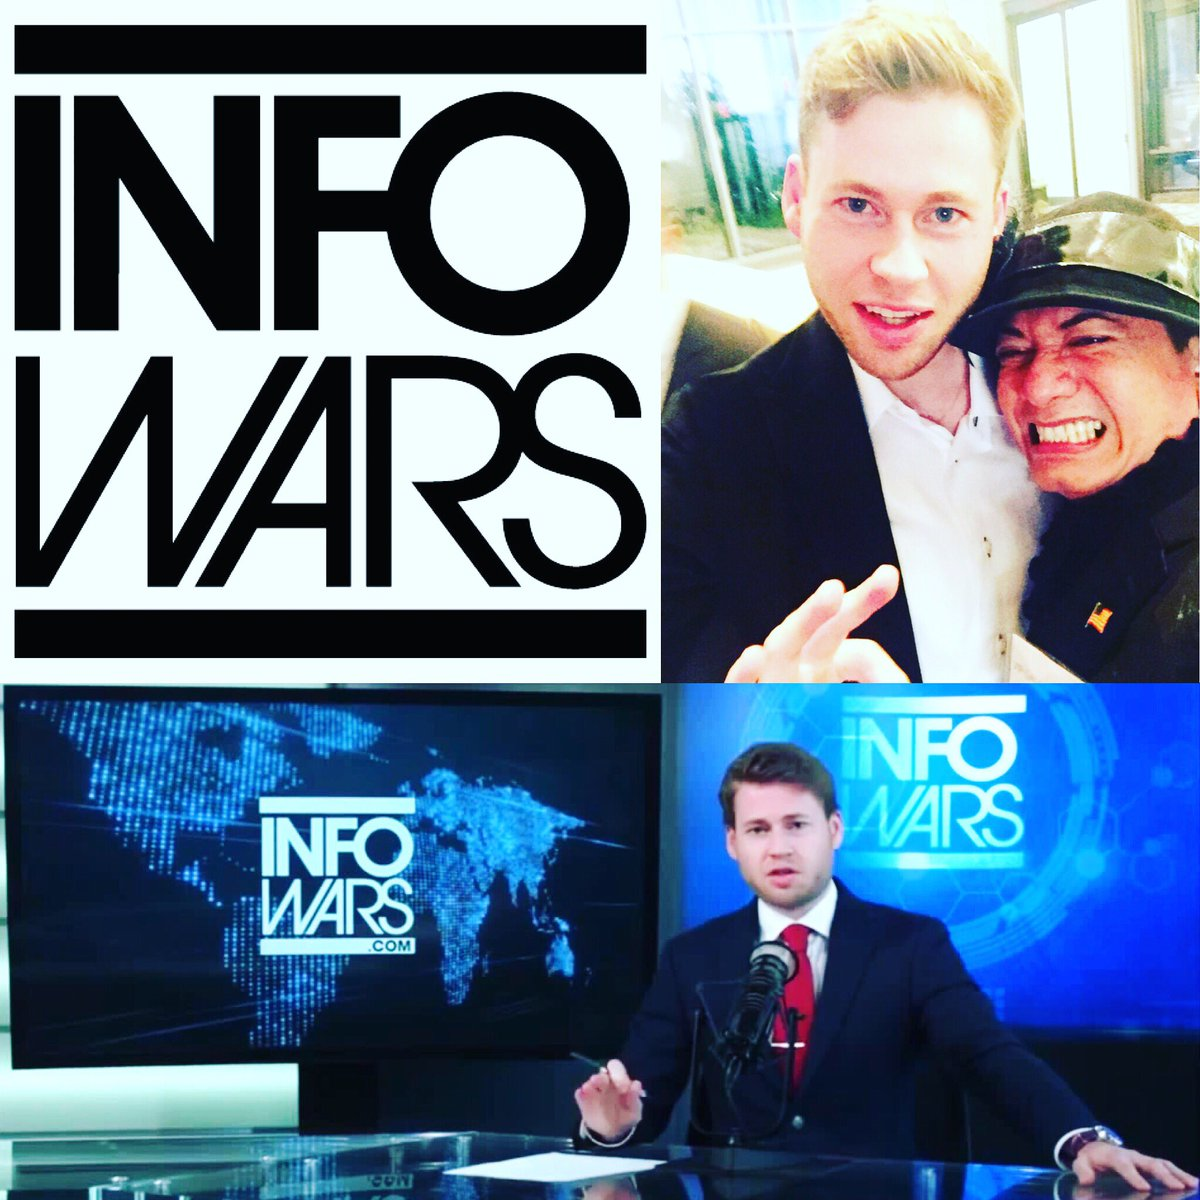 INFOWARS! Watch Us &amp; Stay Tuned, Host Owen Shroyer with Amazing Recording Artist Ricky Rebel today at 5:30 Eastern Time, but wait there's more! #infowars #realnews #news #americafirst #proudamerican #blessed #honored #grateful #kag #maga #usa <br>http://pic.twitter.com/bHhNonAkUP